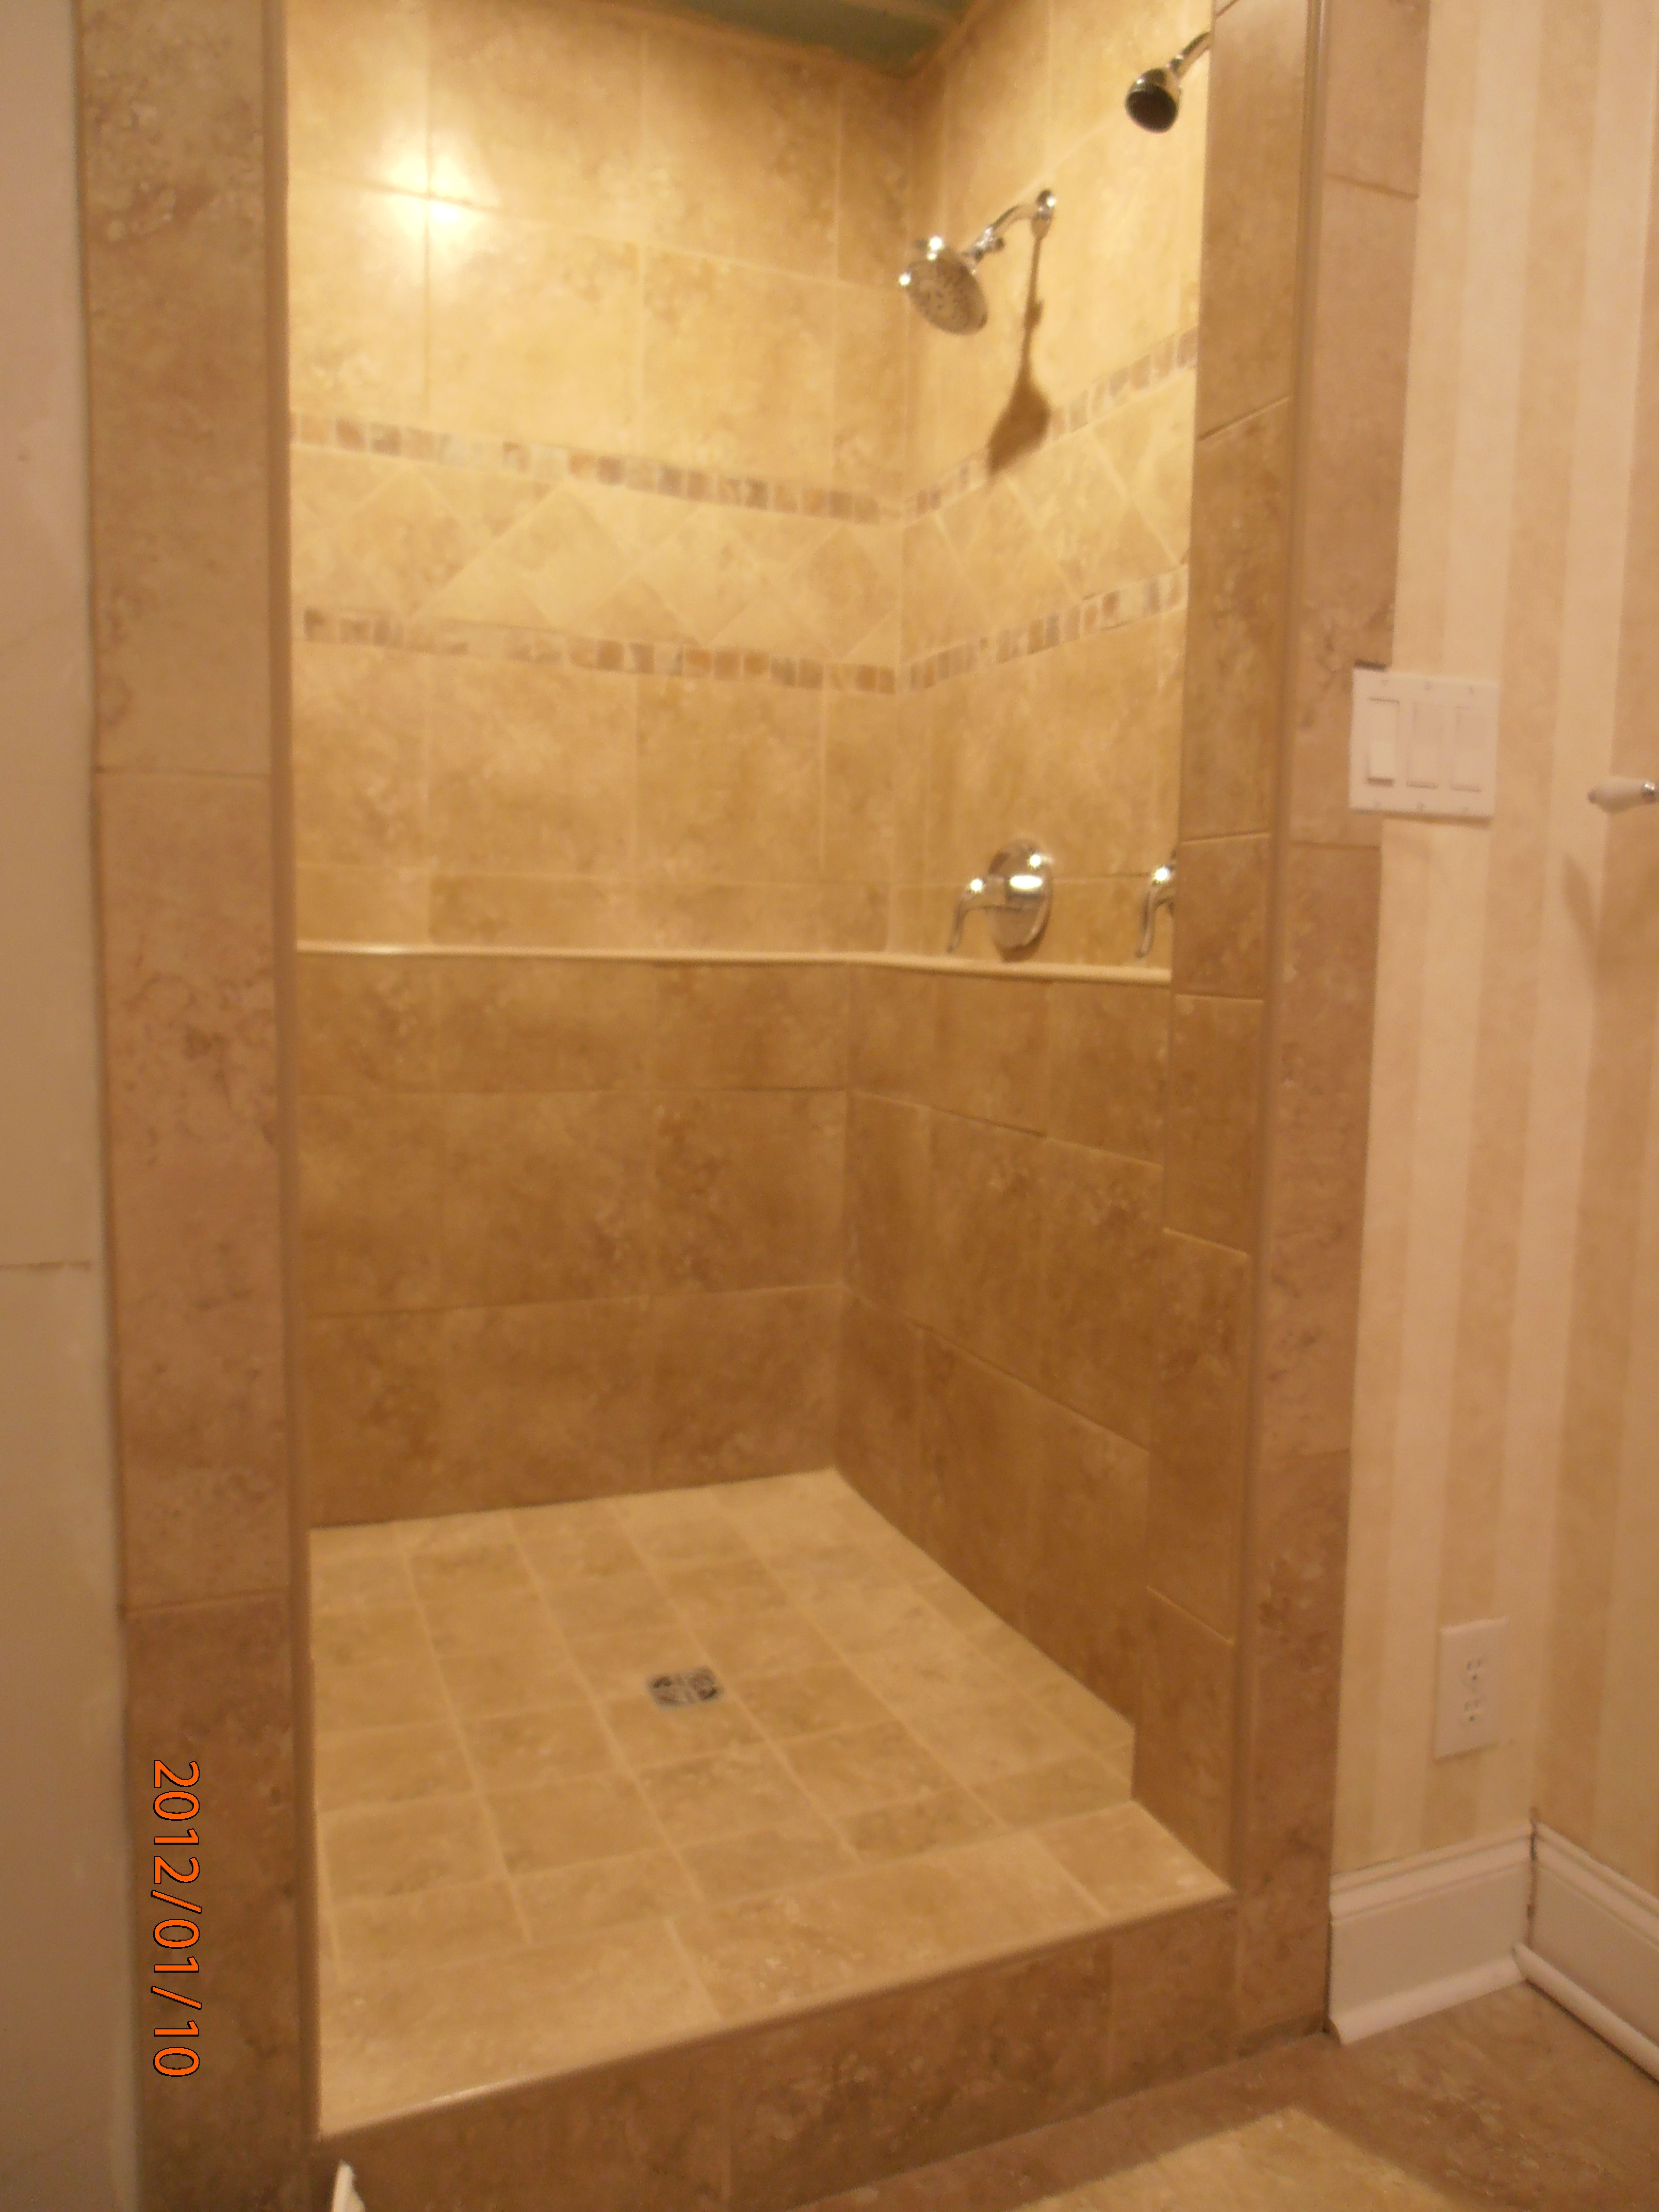 Newly Remodeled Shower. Porcelain Tile Rappalano Ocre Accented With  Princeps Tortora.